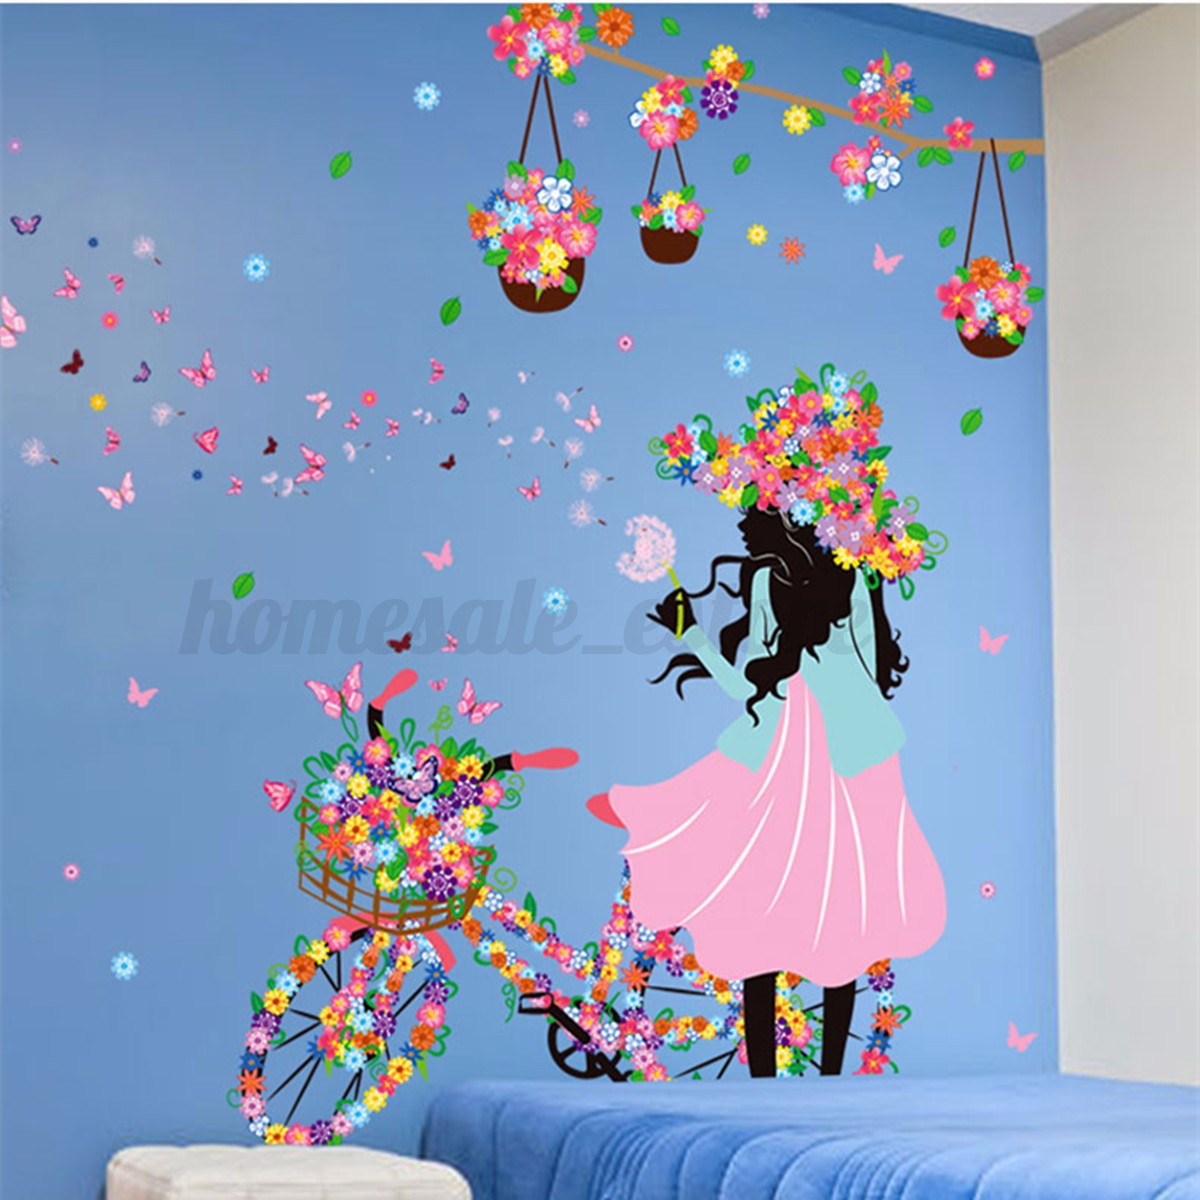 Girl flower removable wall art sticker vinyl decal room home mural deco - Decoration mural design ...